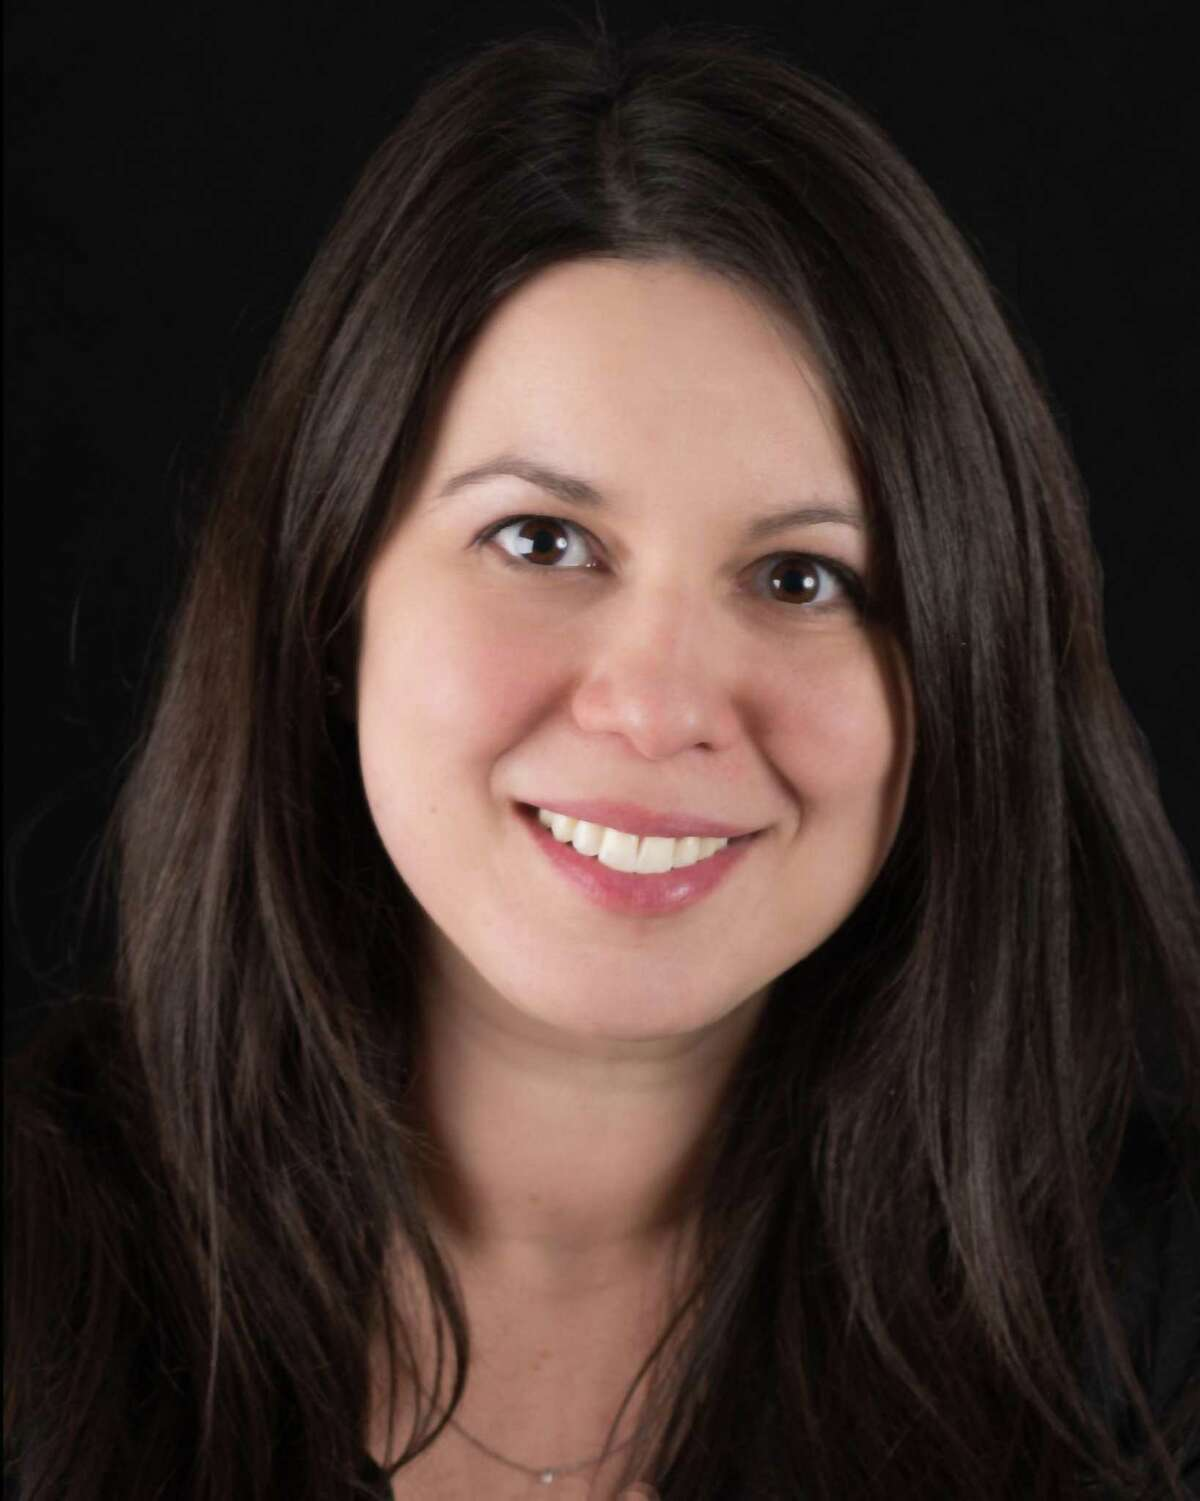 Melissa-Jean Rotini, an Unaffiliated candidate who ran on the Republican line was elected to the Wilton Planning and Zoning Commission.